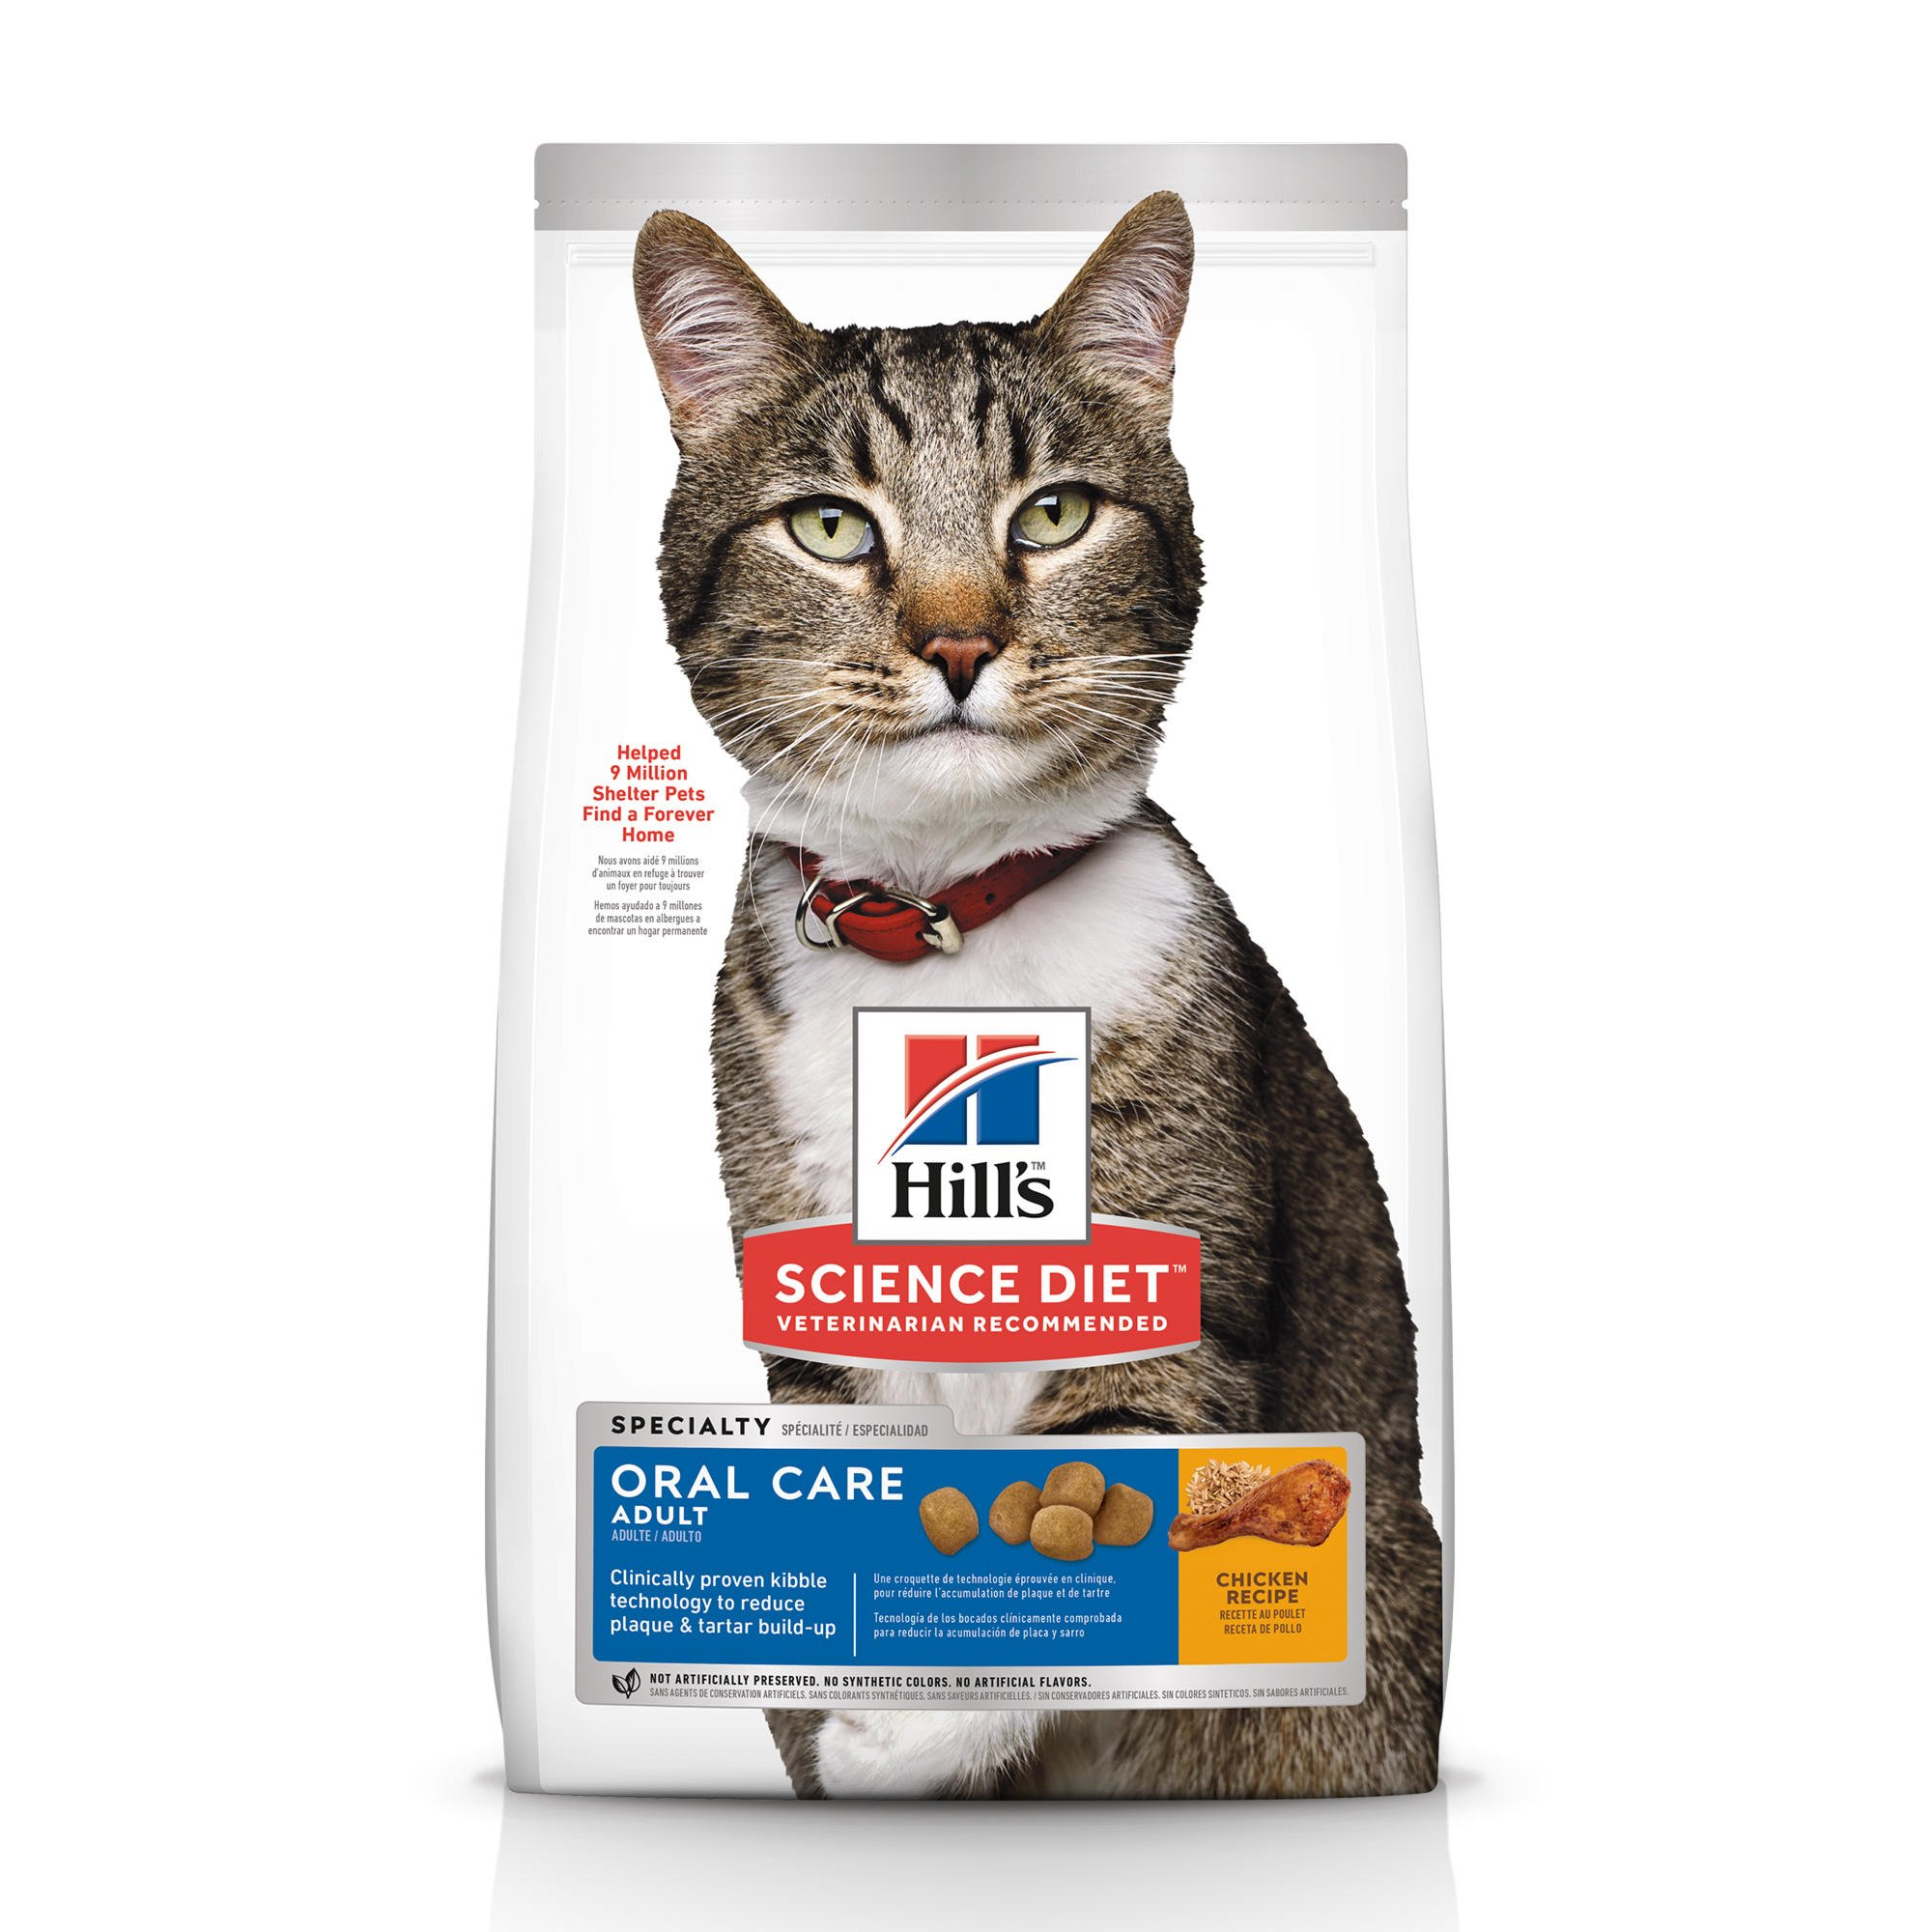 Hill's Science Diet Adult Oral Care Chicken Recipe Dry Cat Food | Petco